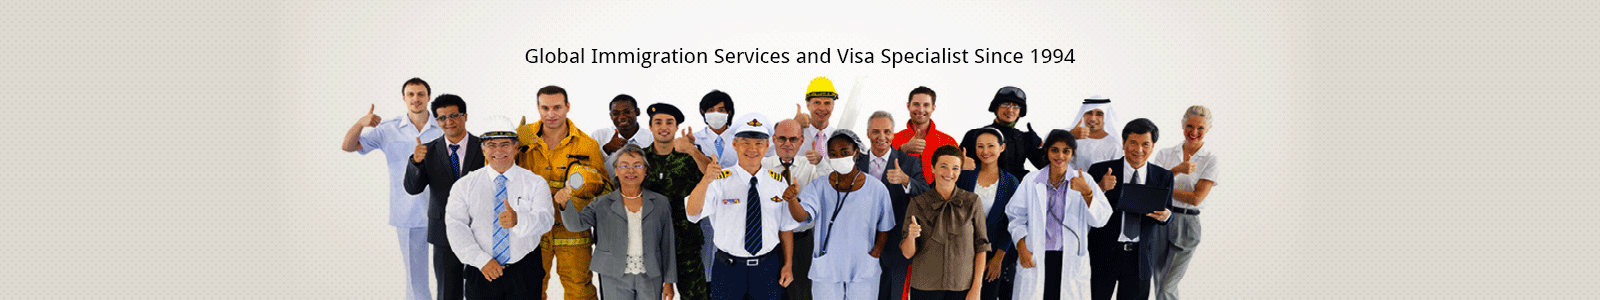 World Wide Immigration Services